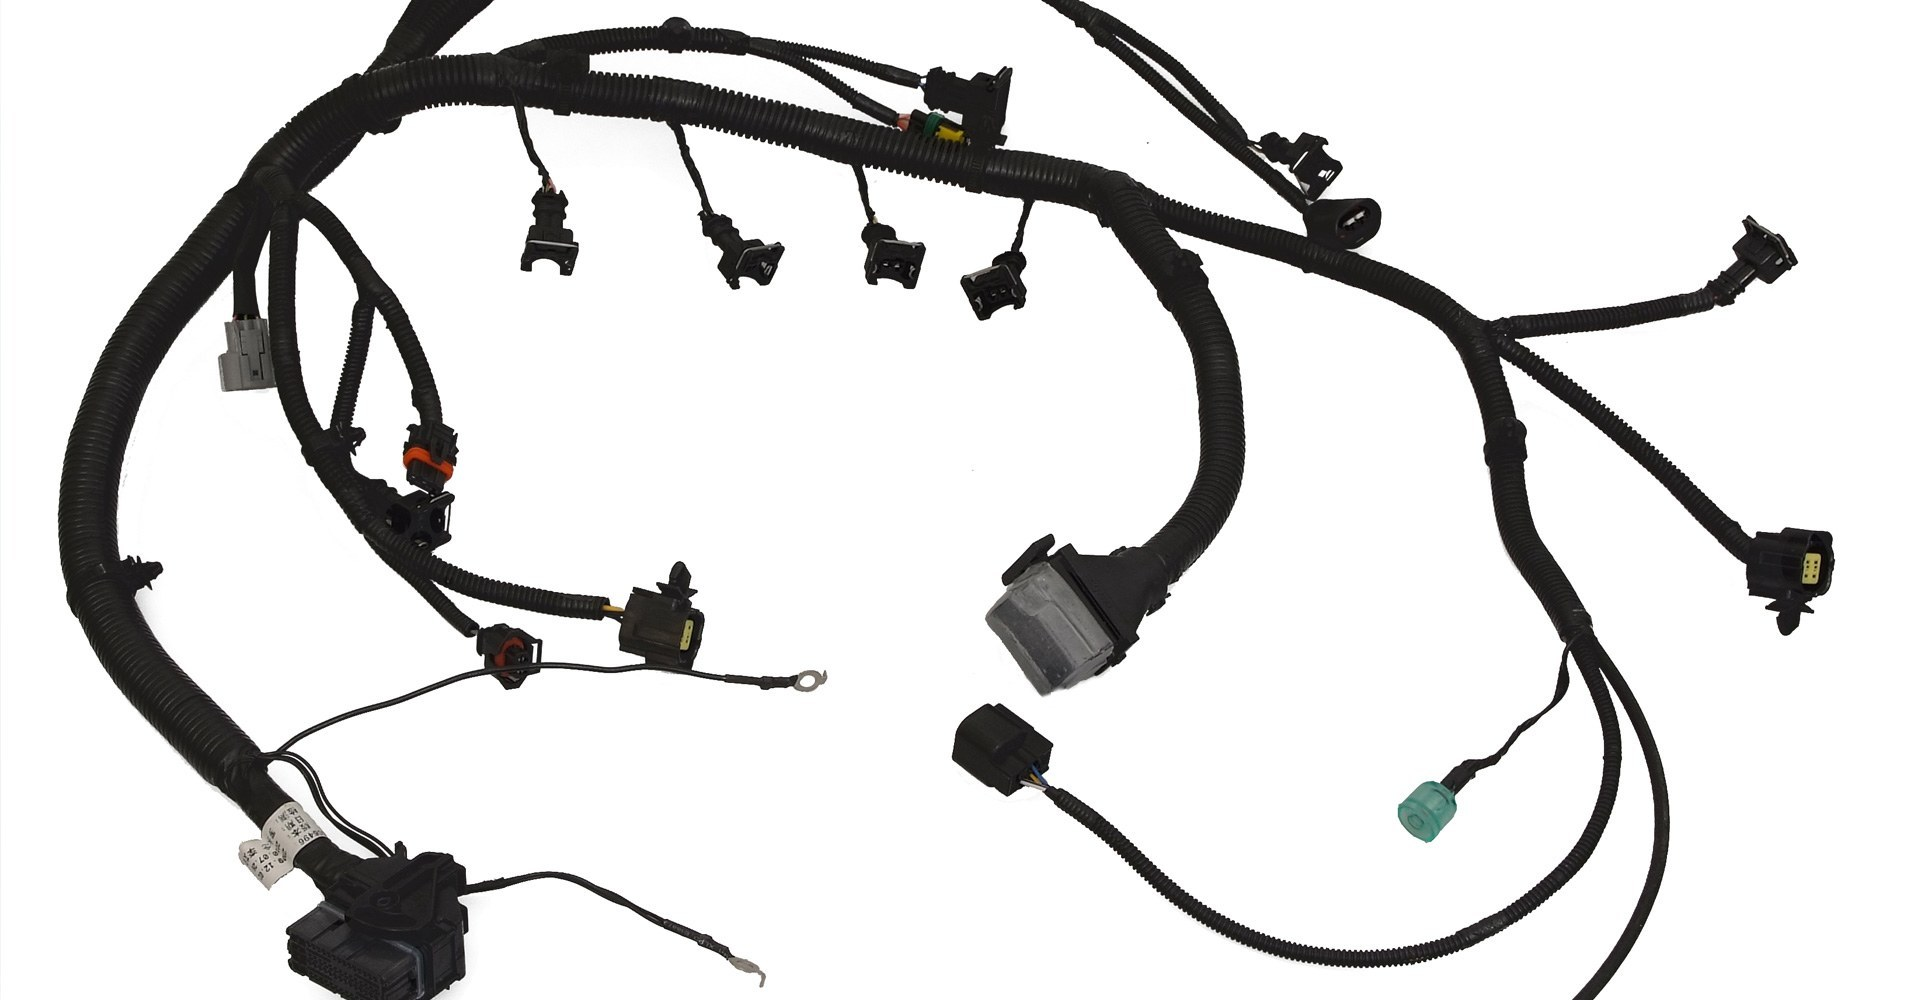 Automotive Wire Harness Products - LoromLorom